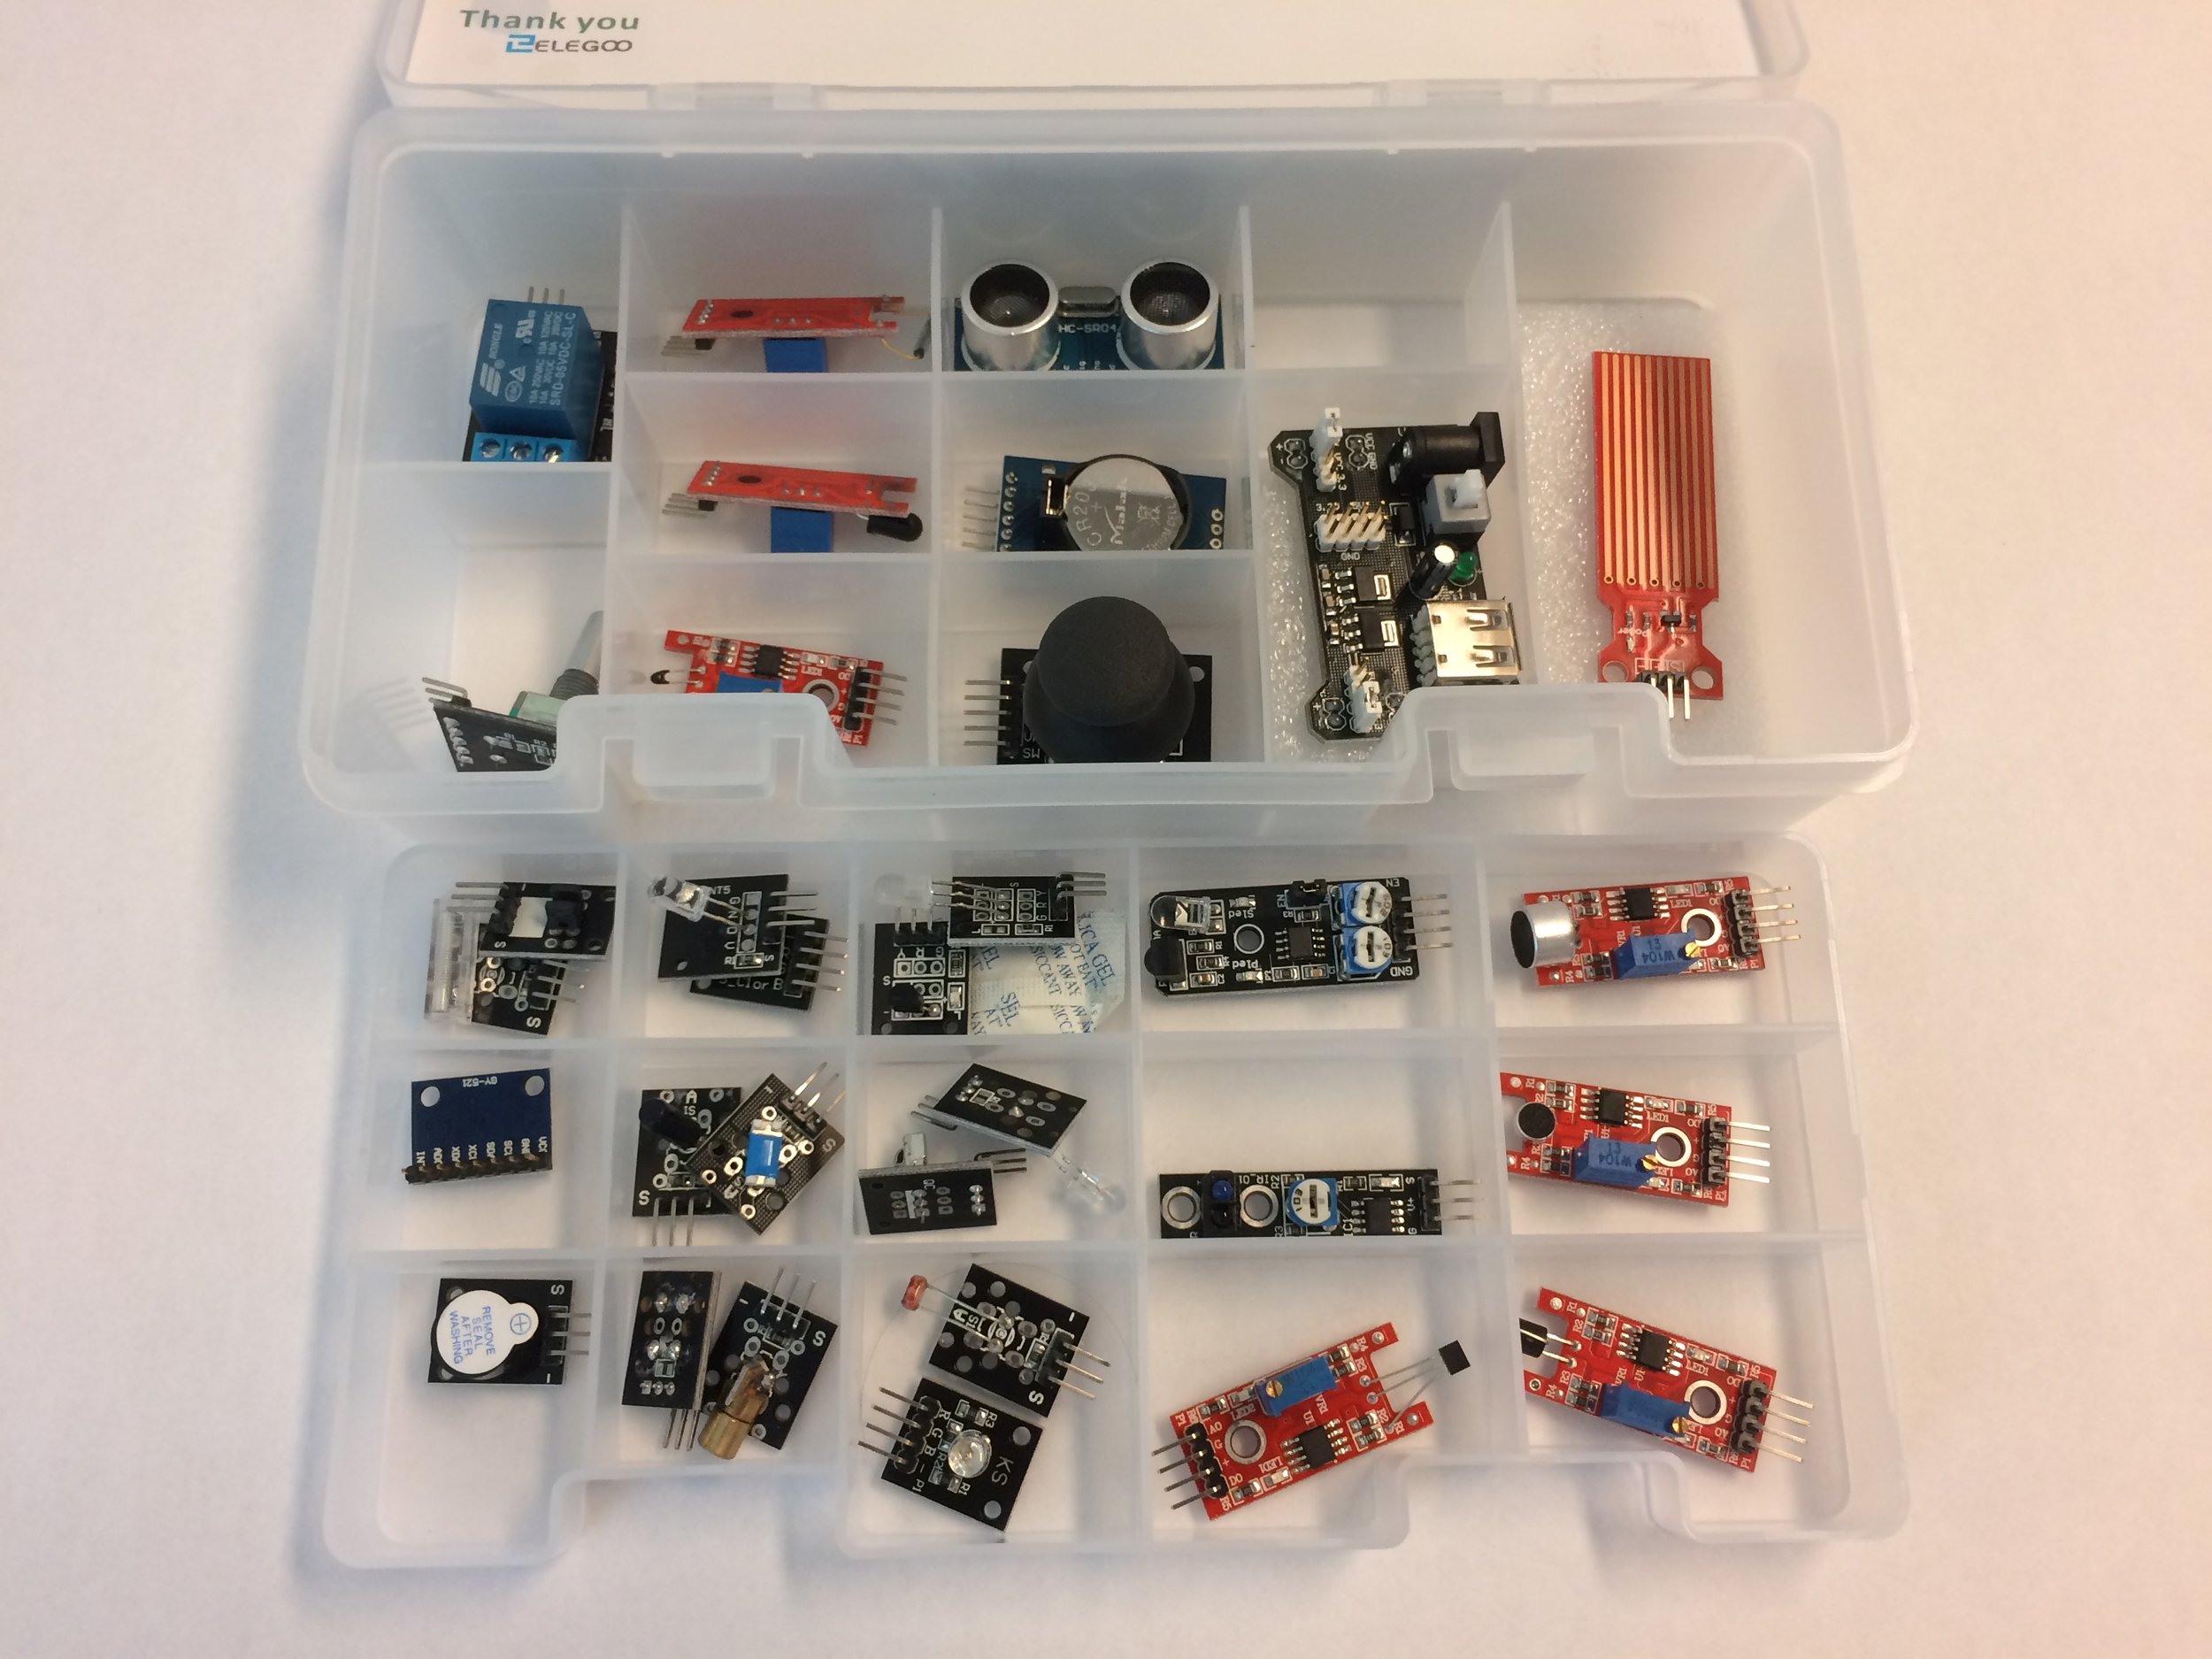 Elegoo 37 Sensor Kit - open.JPG